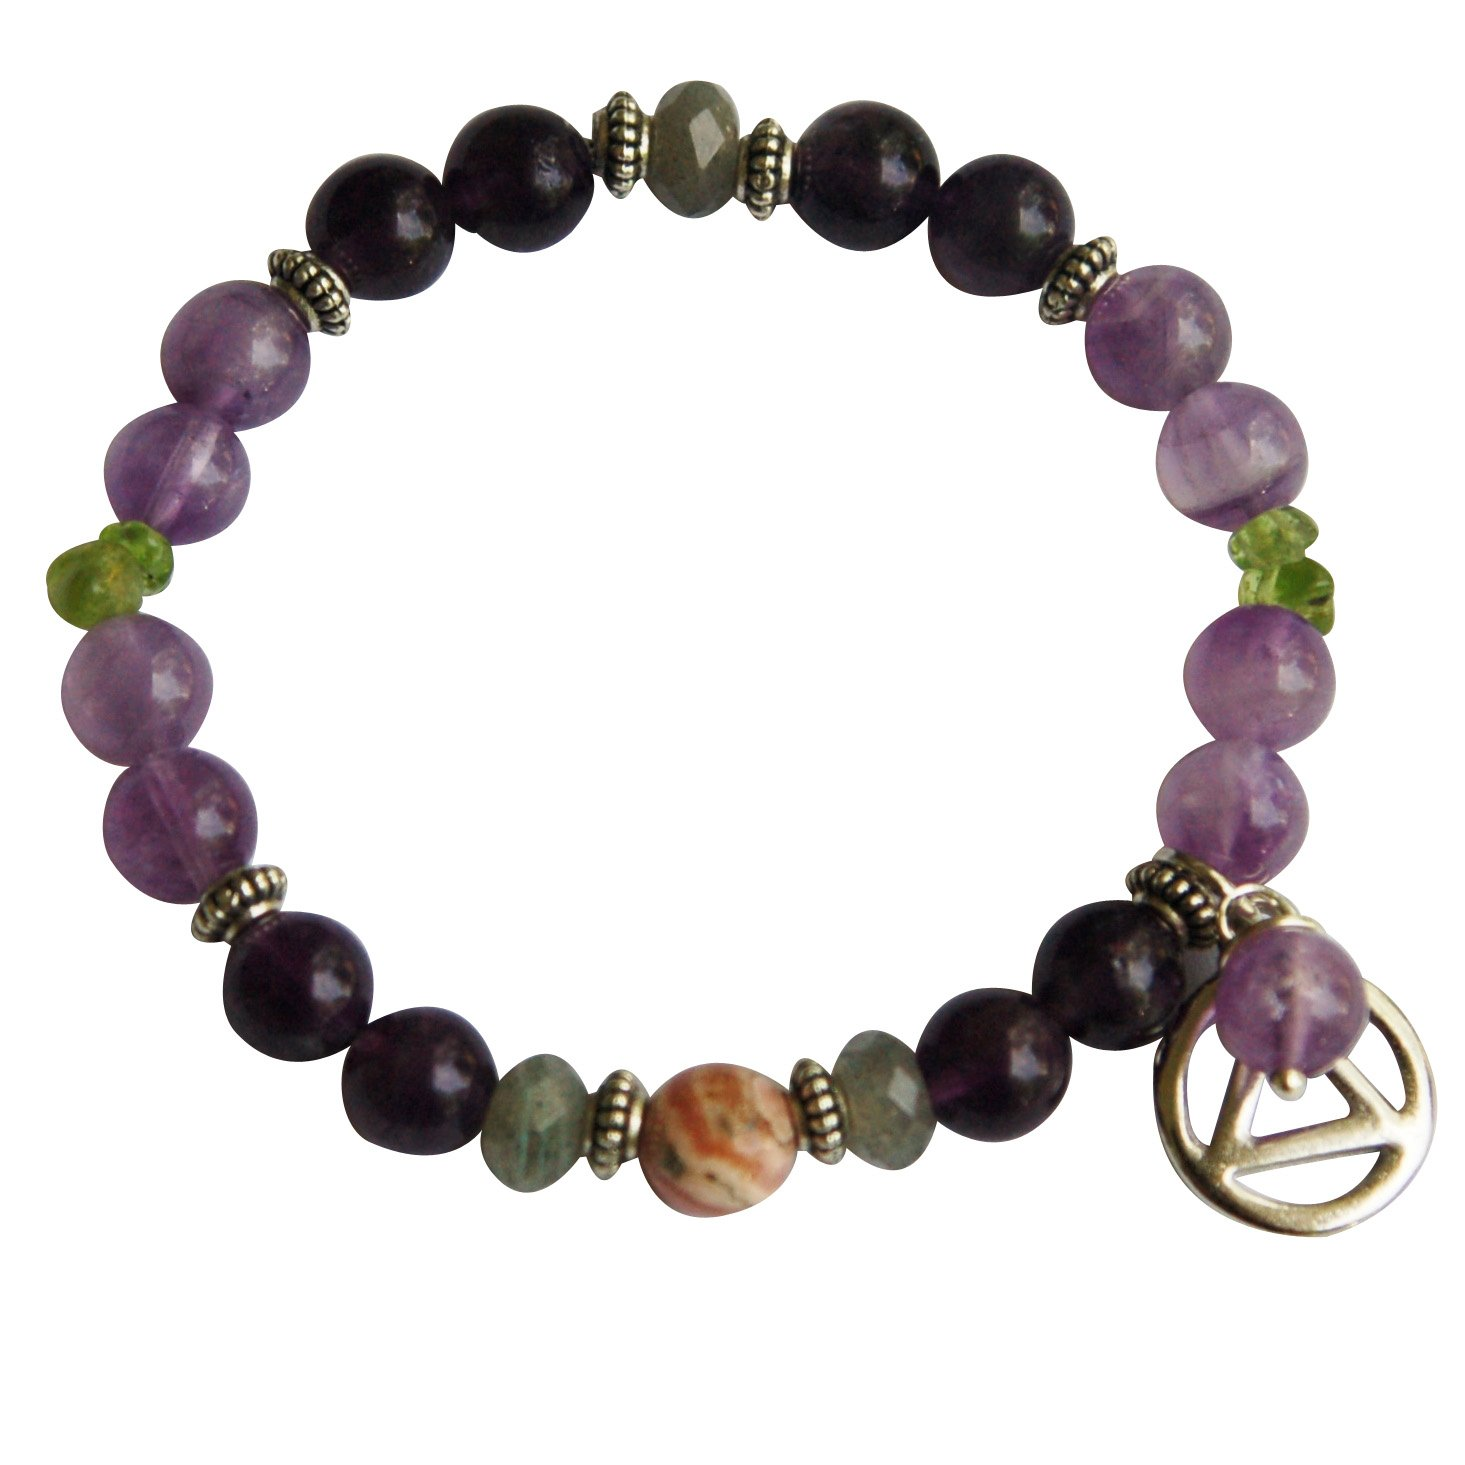 Serenity + Sobriety Spiritual Bracelet for Overcoming Addictions